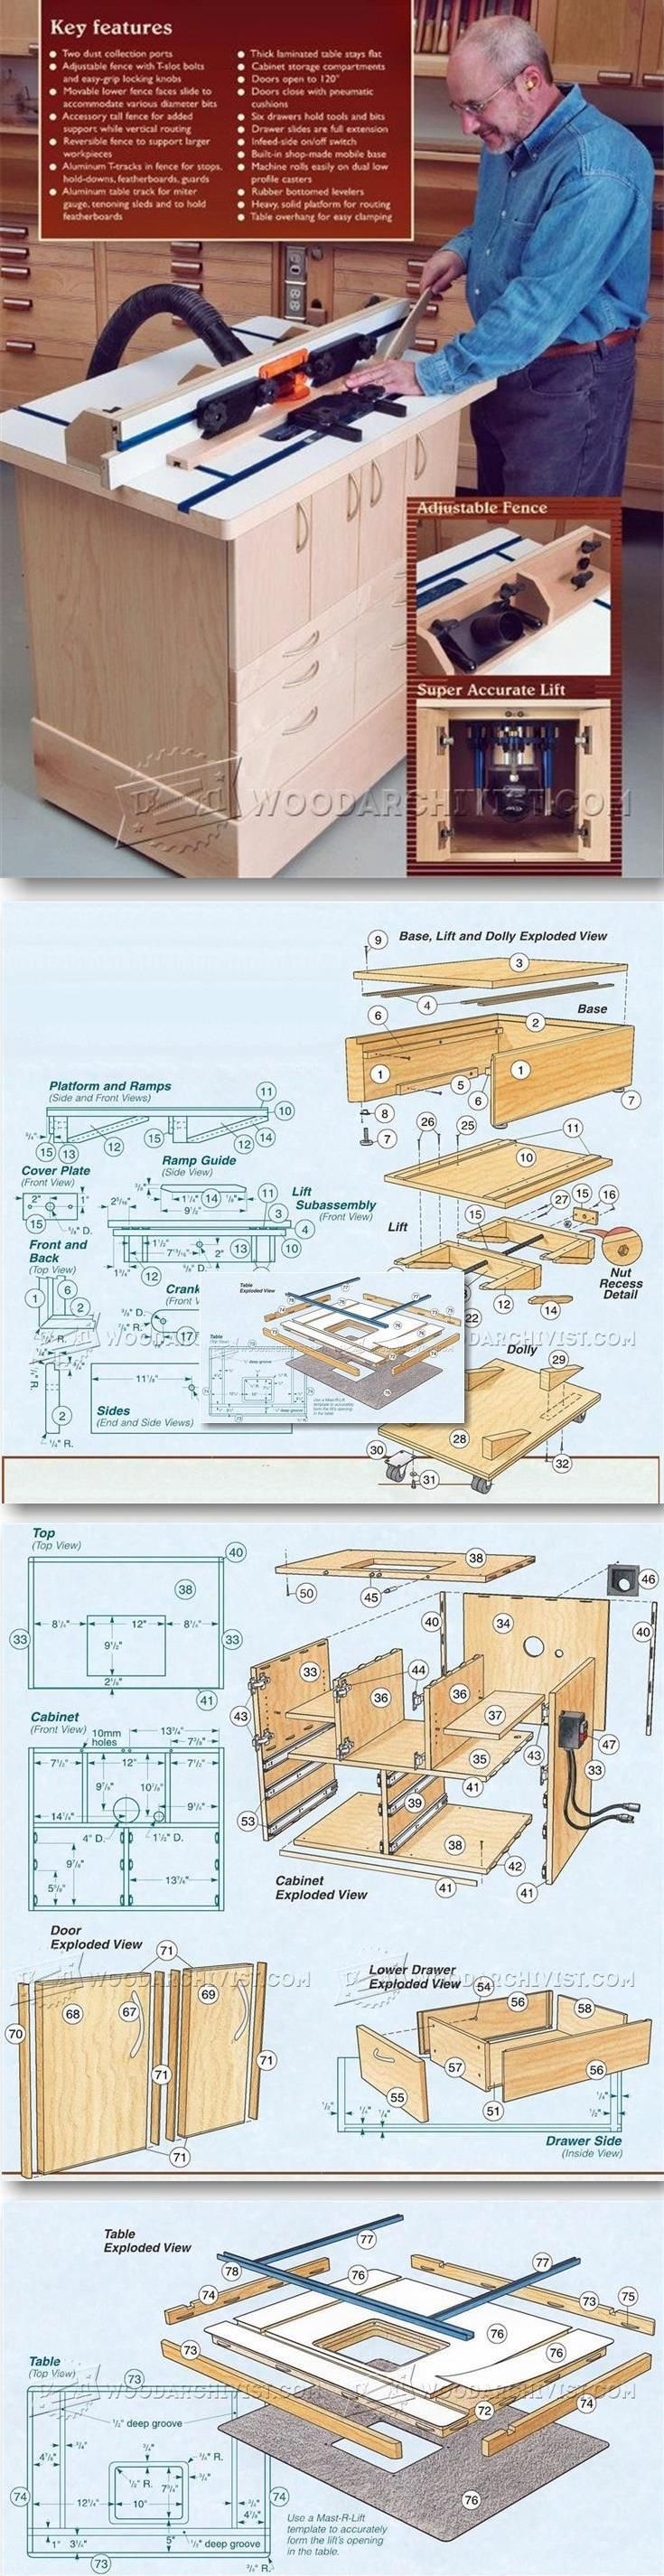 61 Best Hazlo T Mismo Artesanas Images On Pinterest Carpentry Schematic Maker Jam And Jelly Diagram Image In Ultimate Router Table Plans Tips Jigs Fixtures Woodarchivistcom